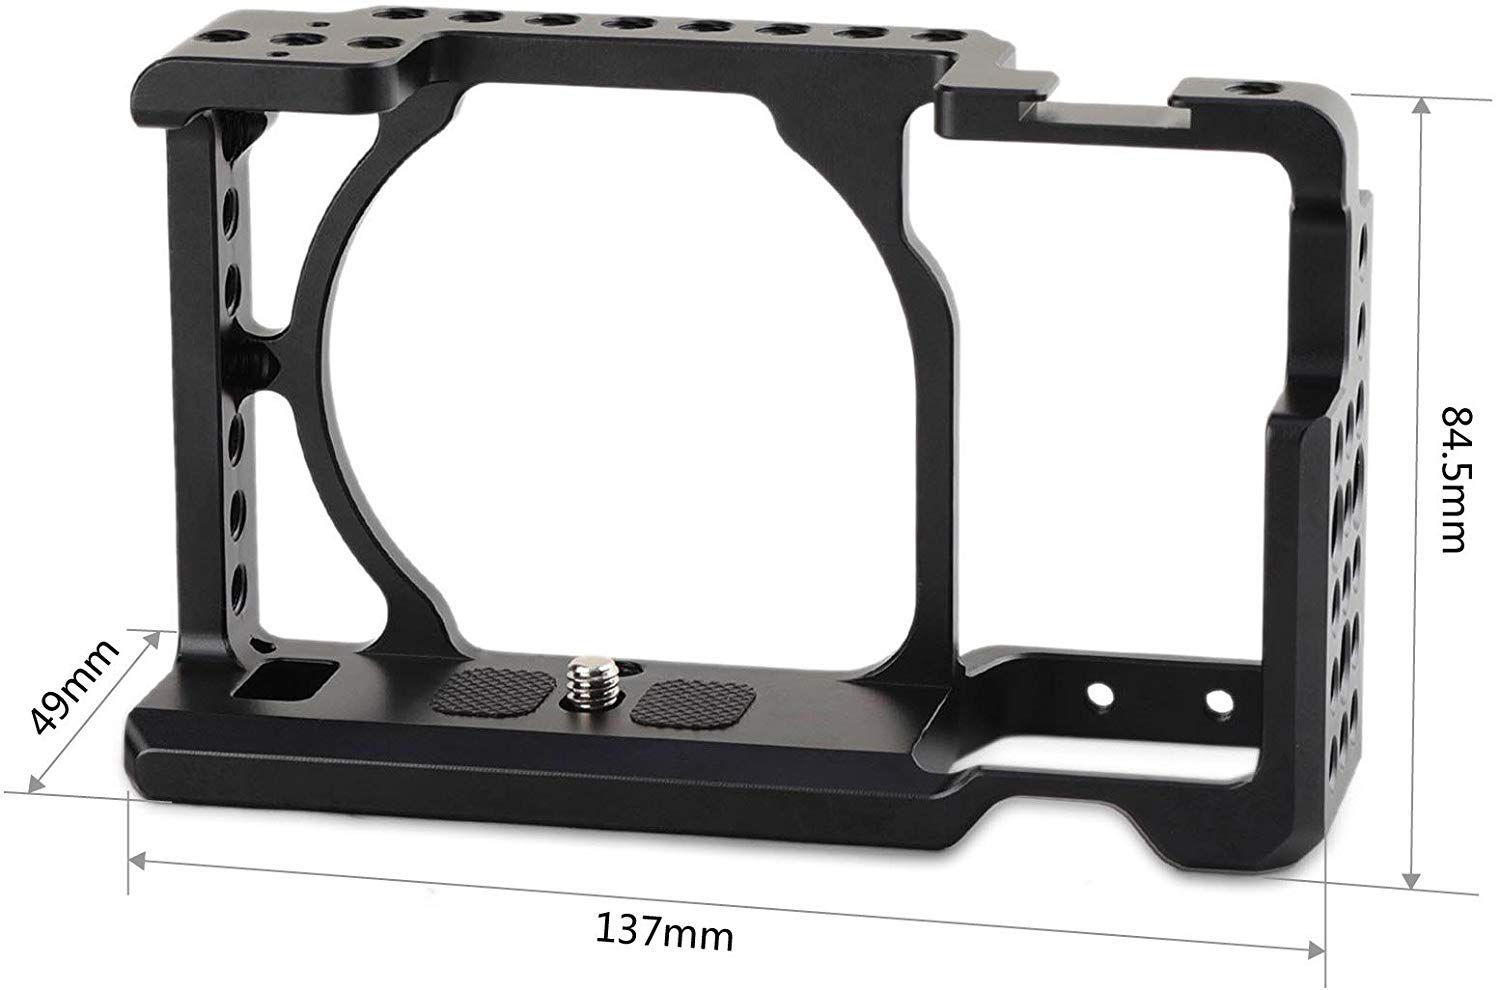 """SMALLRIG Camera Cage for Sony A6000 A6300 ILCE-6000 ILCE-6300 NEX7 with 1/4"""" 3/8"""" Mounting Points and Built-in Cold Shoe - 1661"""